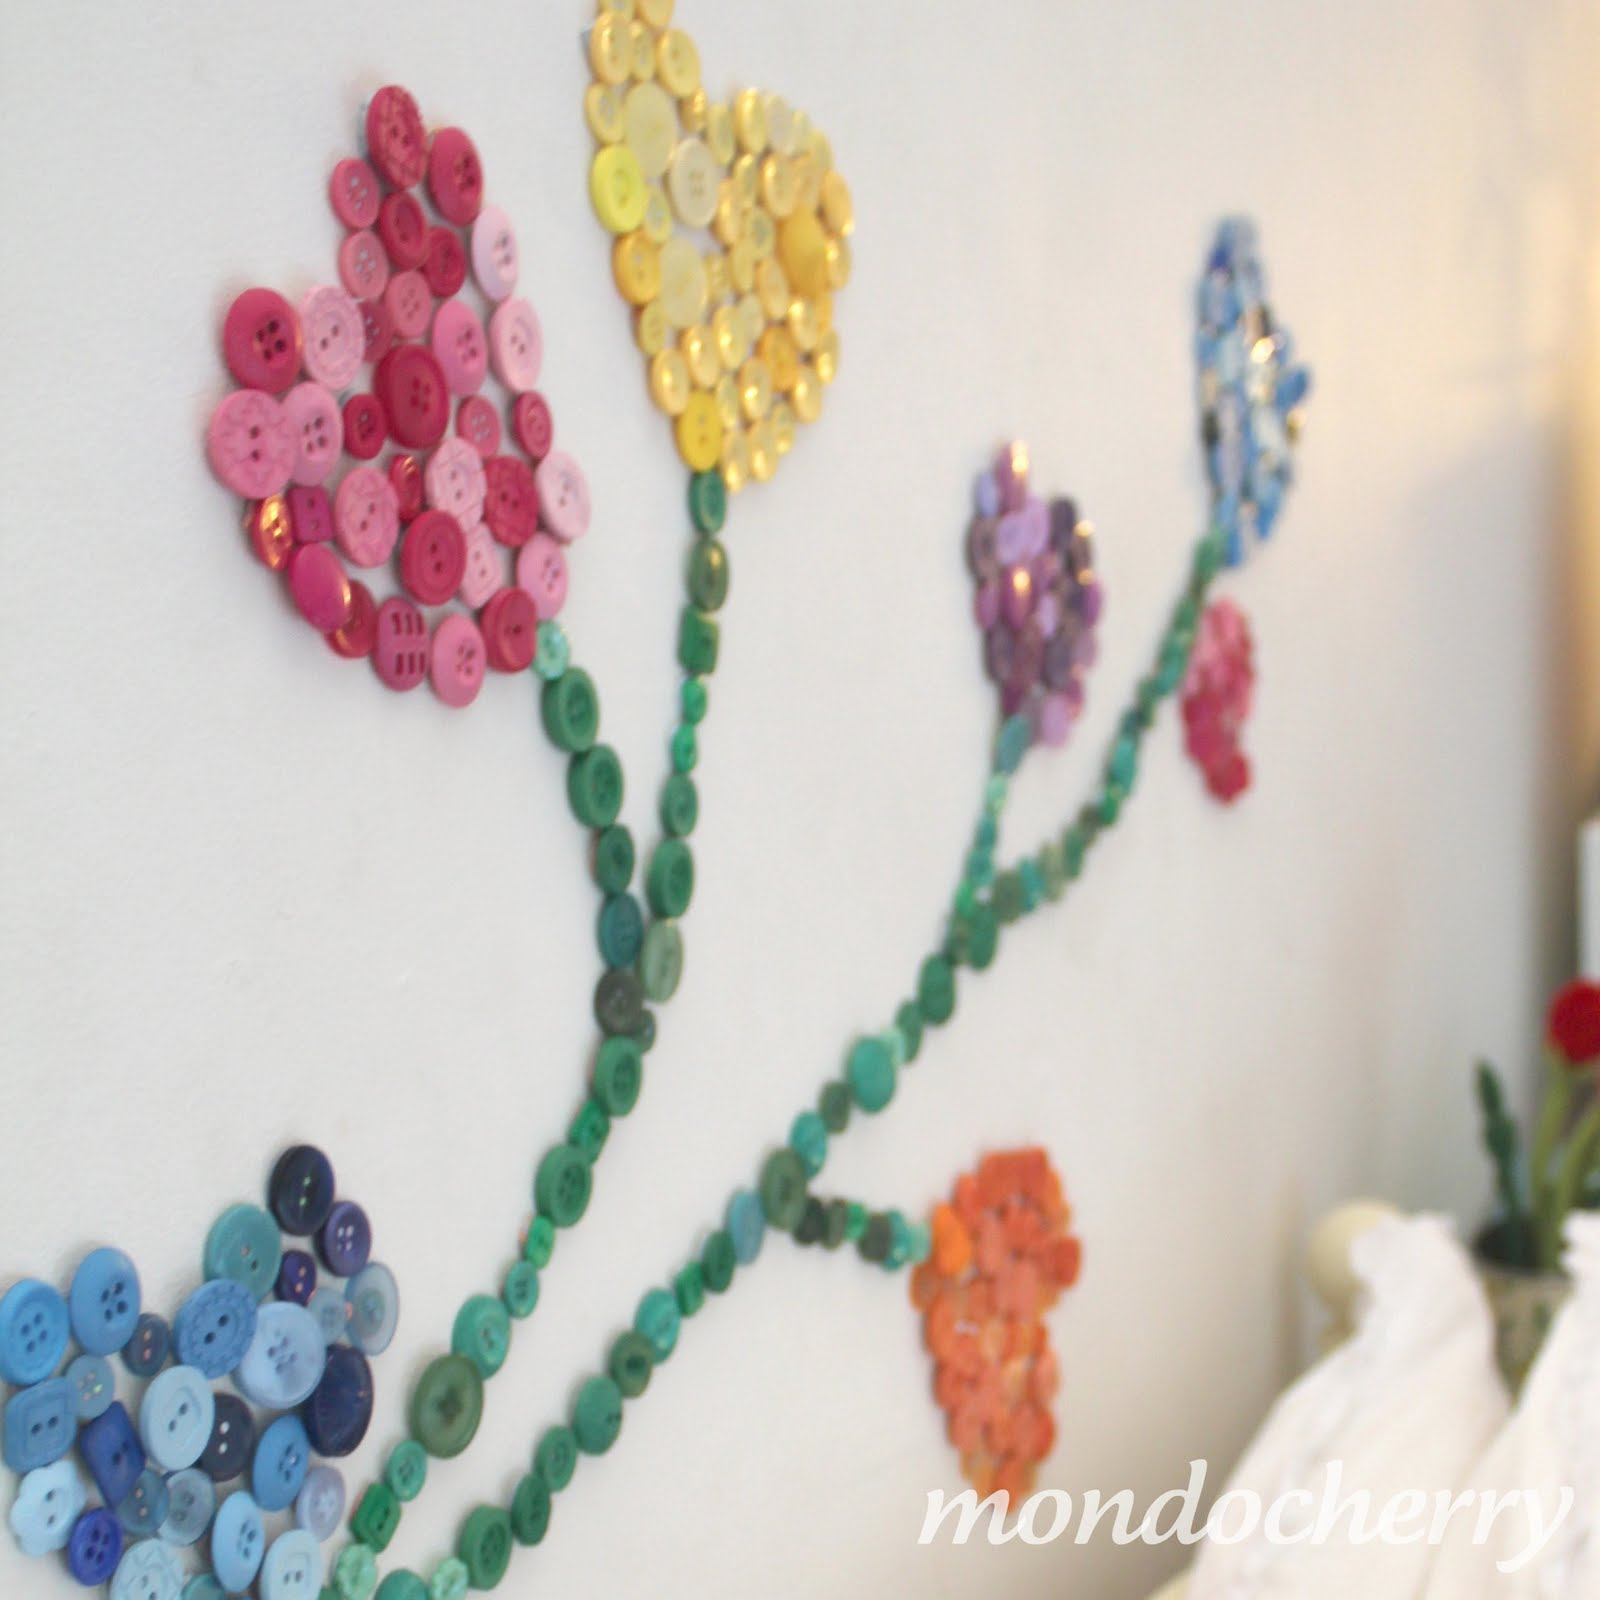 diy wall design with buttons - Simple Shapes Wall Design